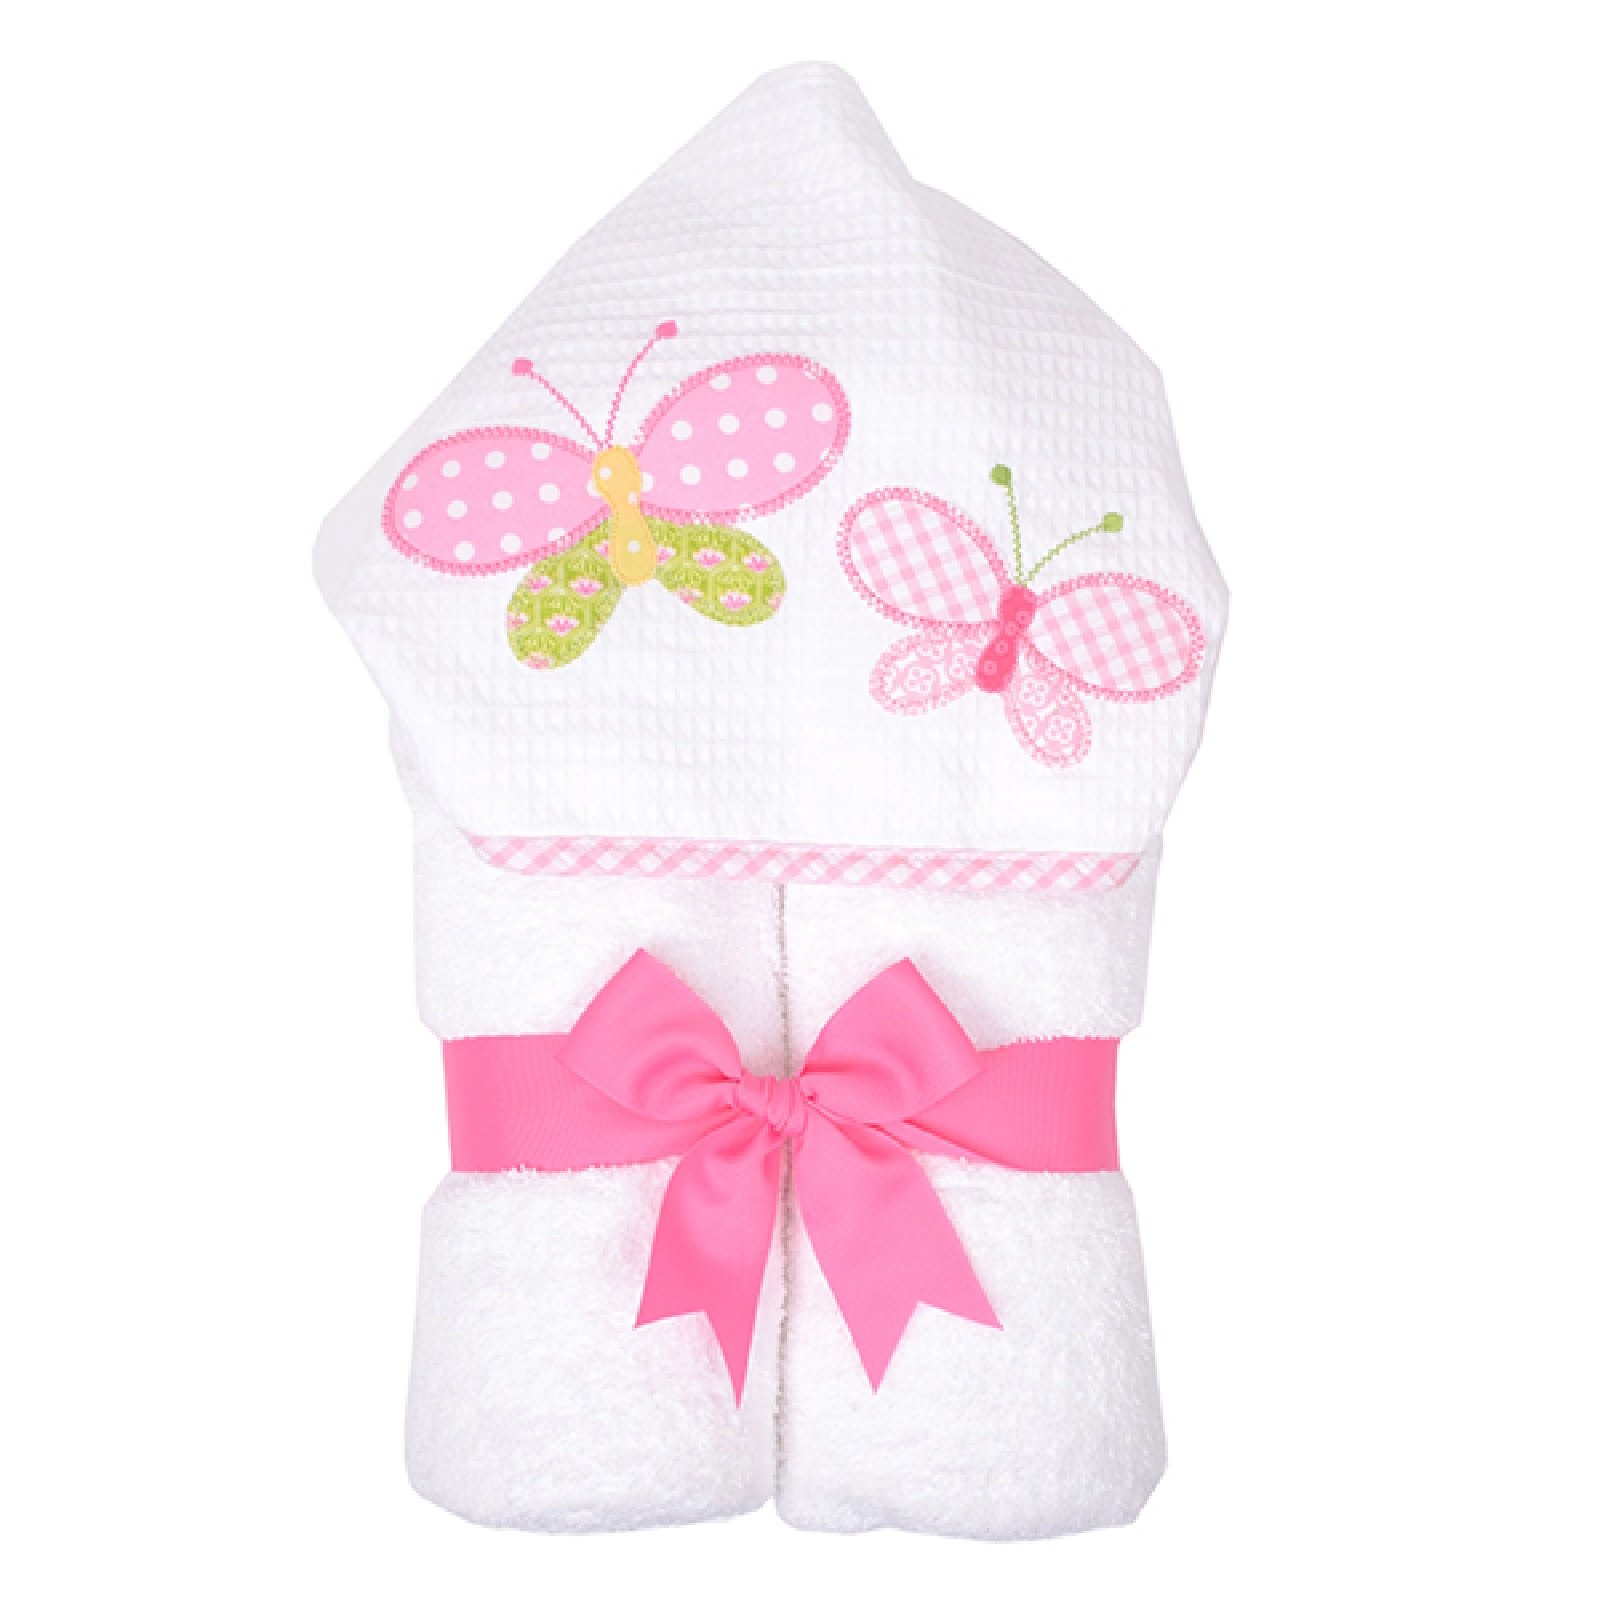 3 Marthas Boutique Everykid Hooded Towel (Pink - Butterfly Kisses) by 3Marthas